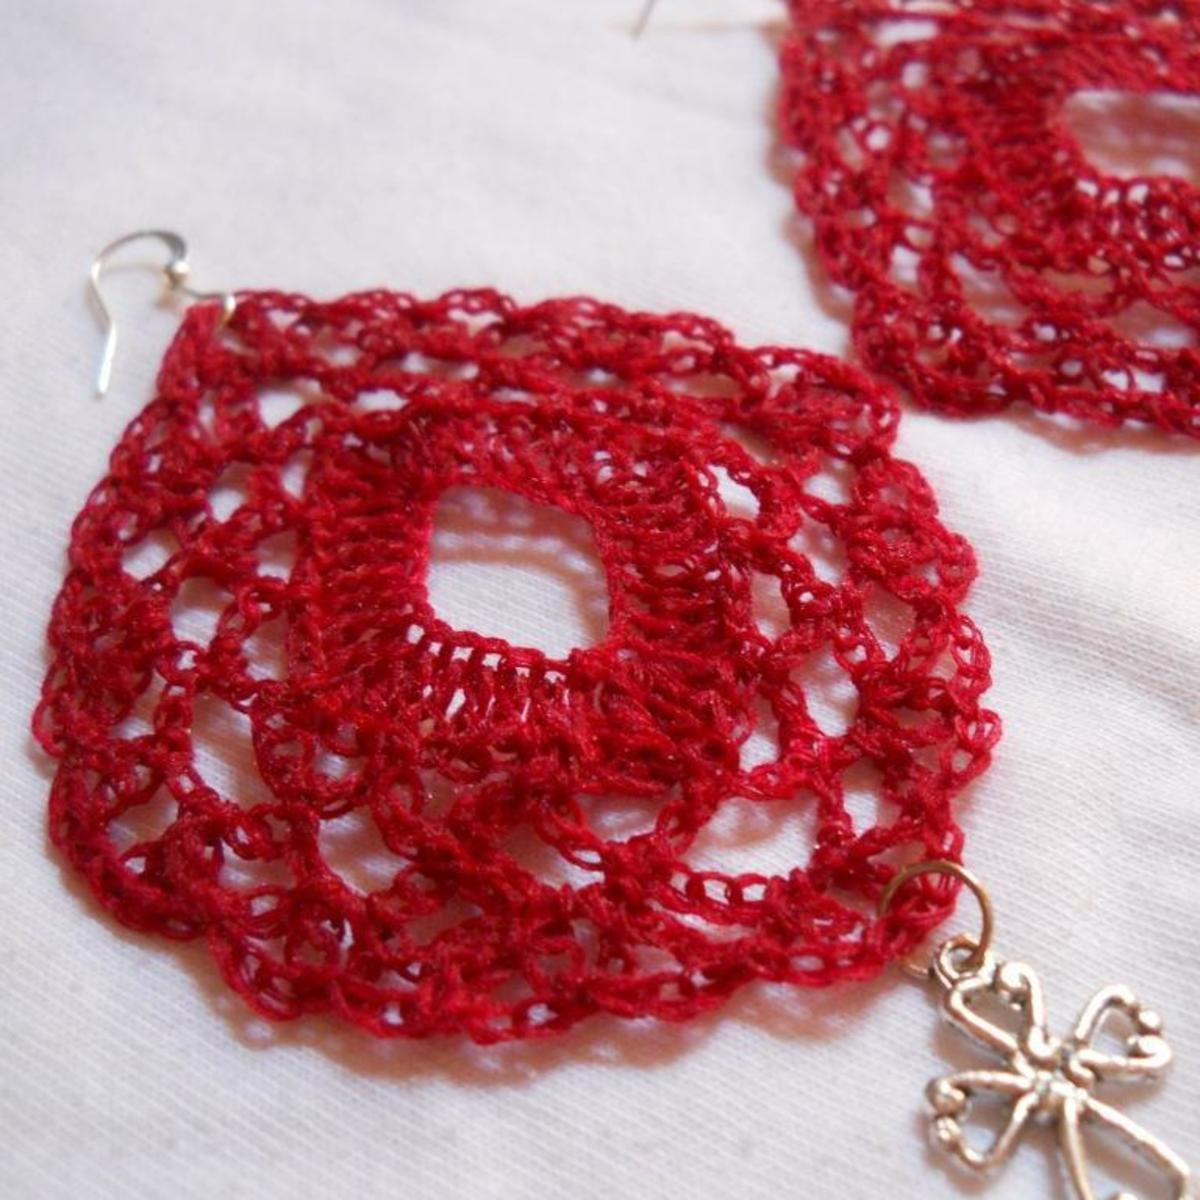 Crochet Diamond Earrings #5